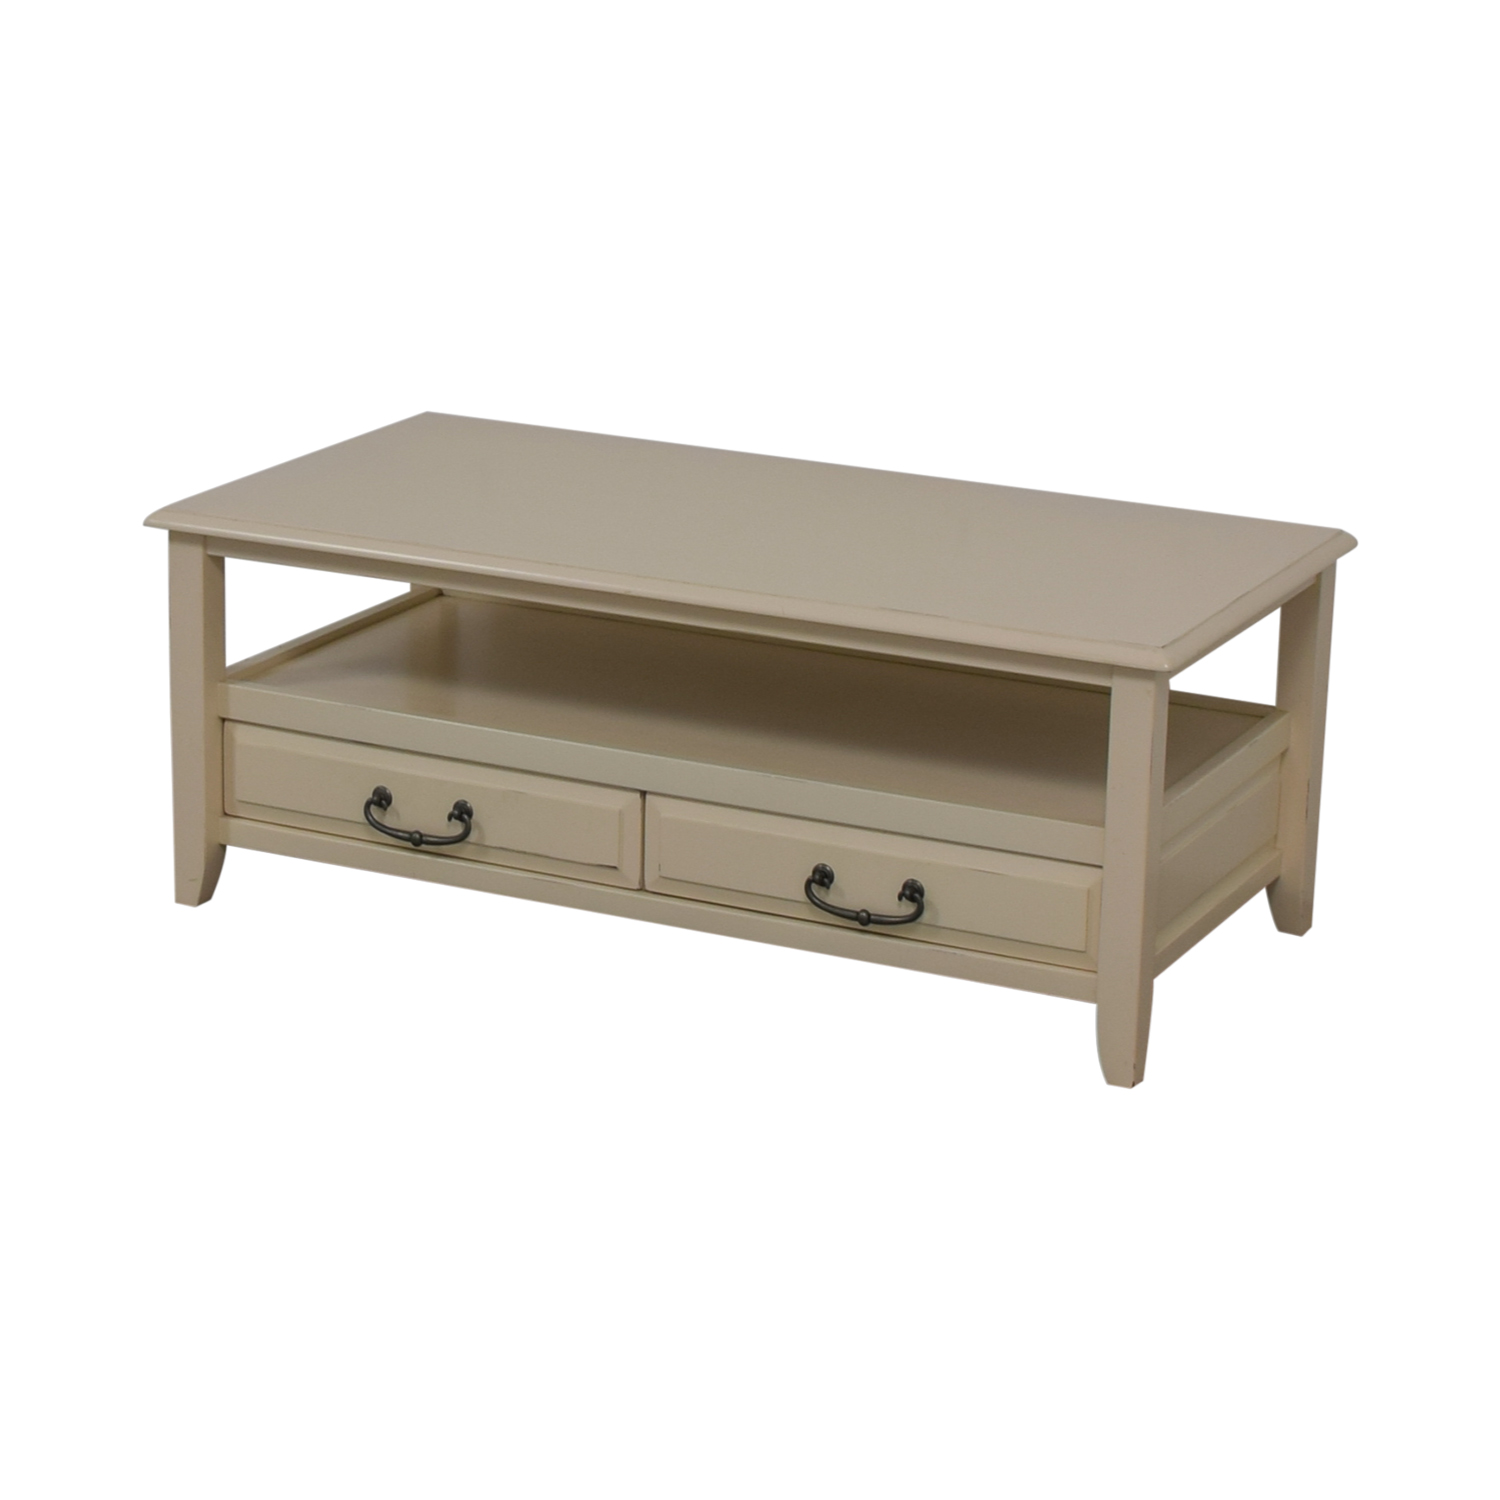 70% OFF - Pier 1 Pier 1 Imports White Two-Drawer Coffee Table / Tables